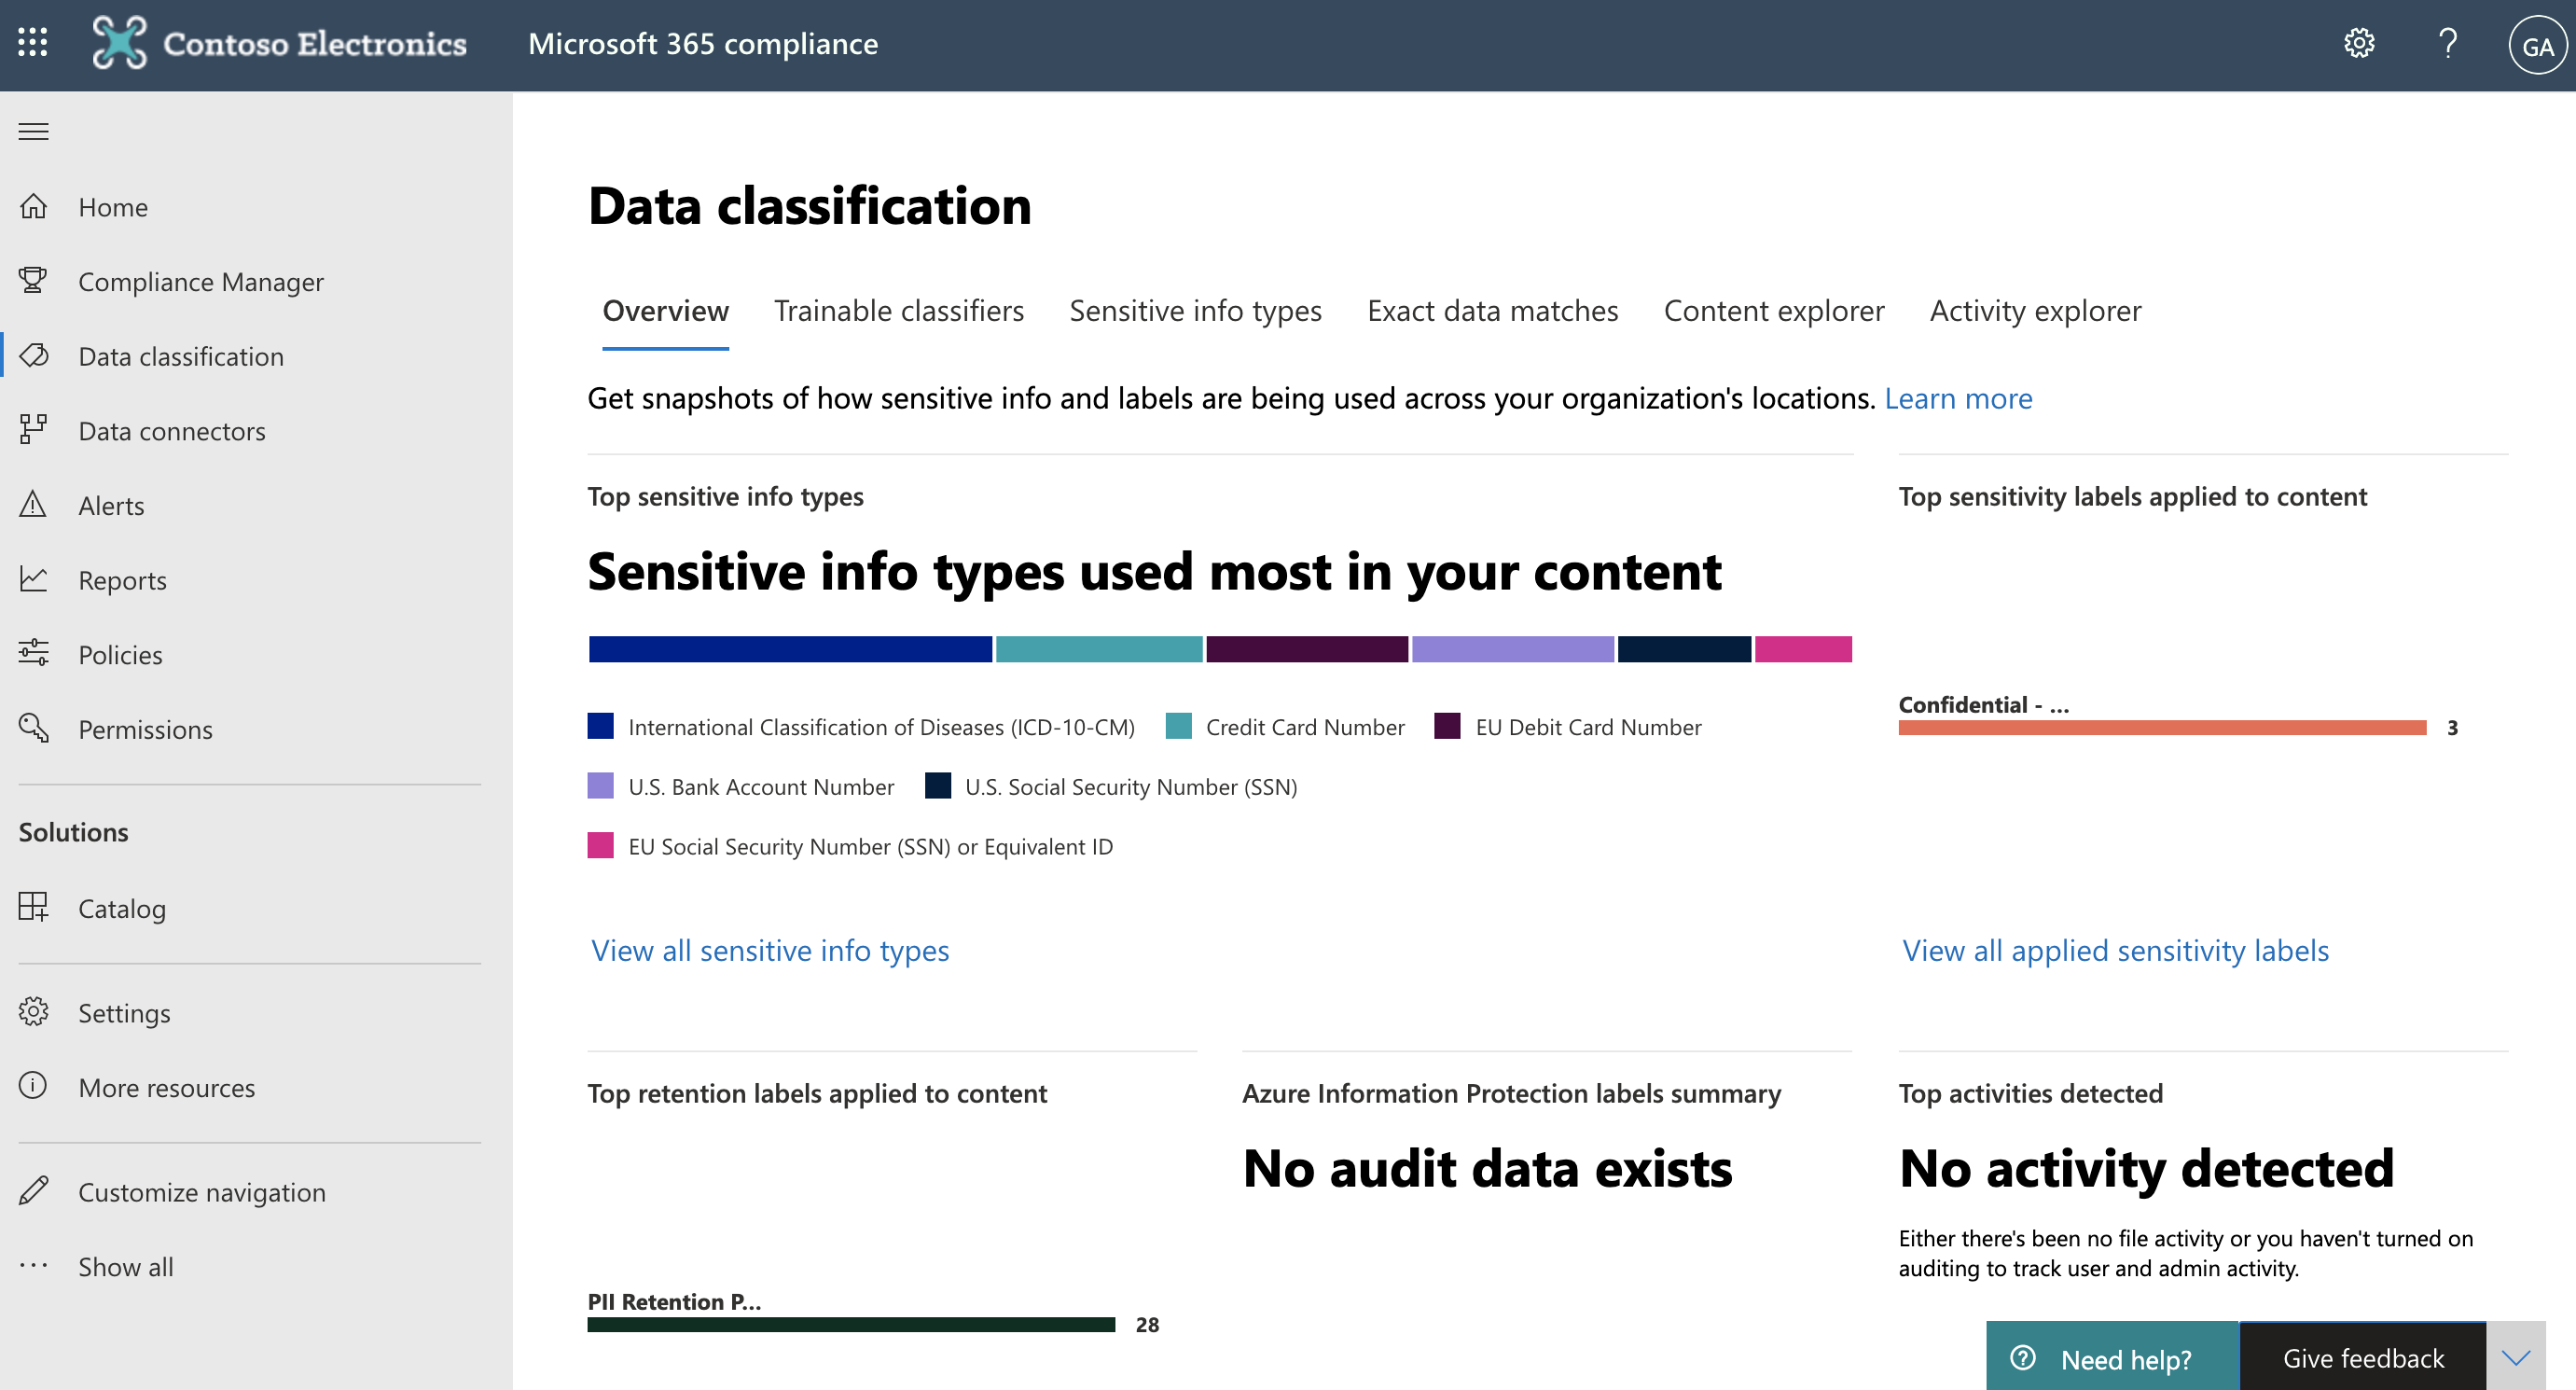 Screenshot of the Data classification page in the Microsoft 365 compliance center.